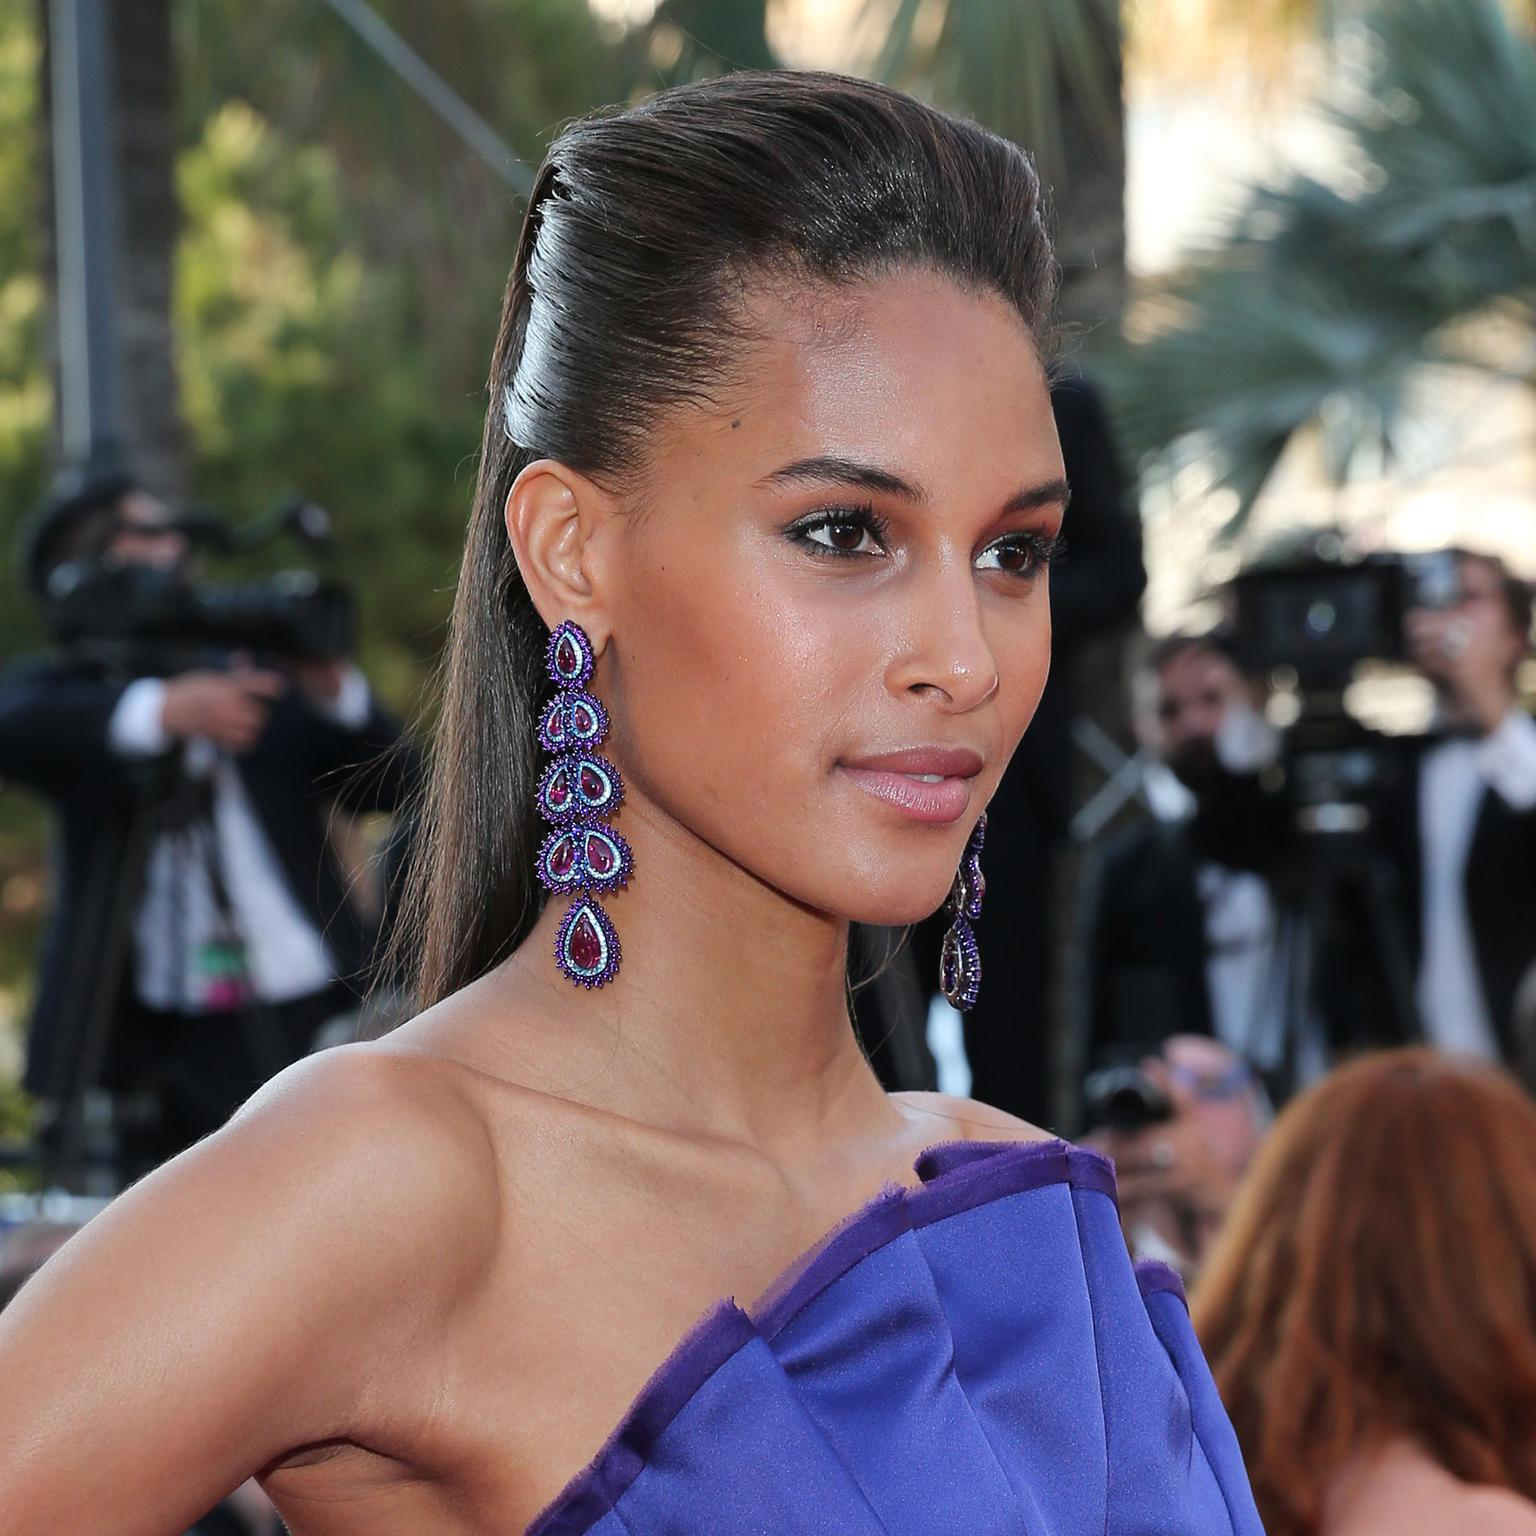 Cannes 2016 Day 7: Cindy Bruna in Chopard